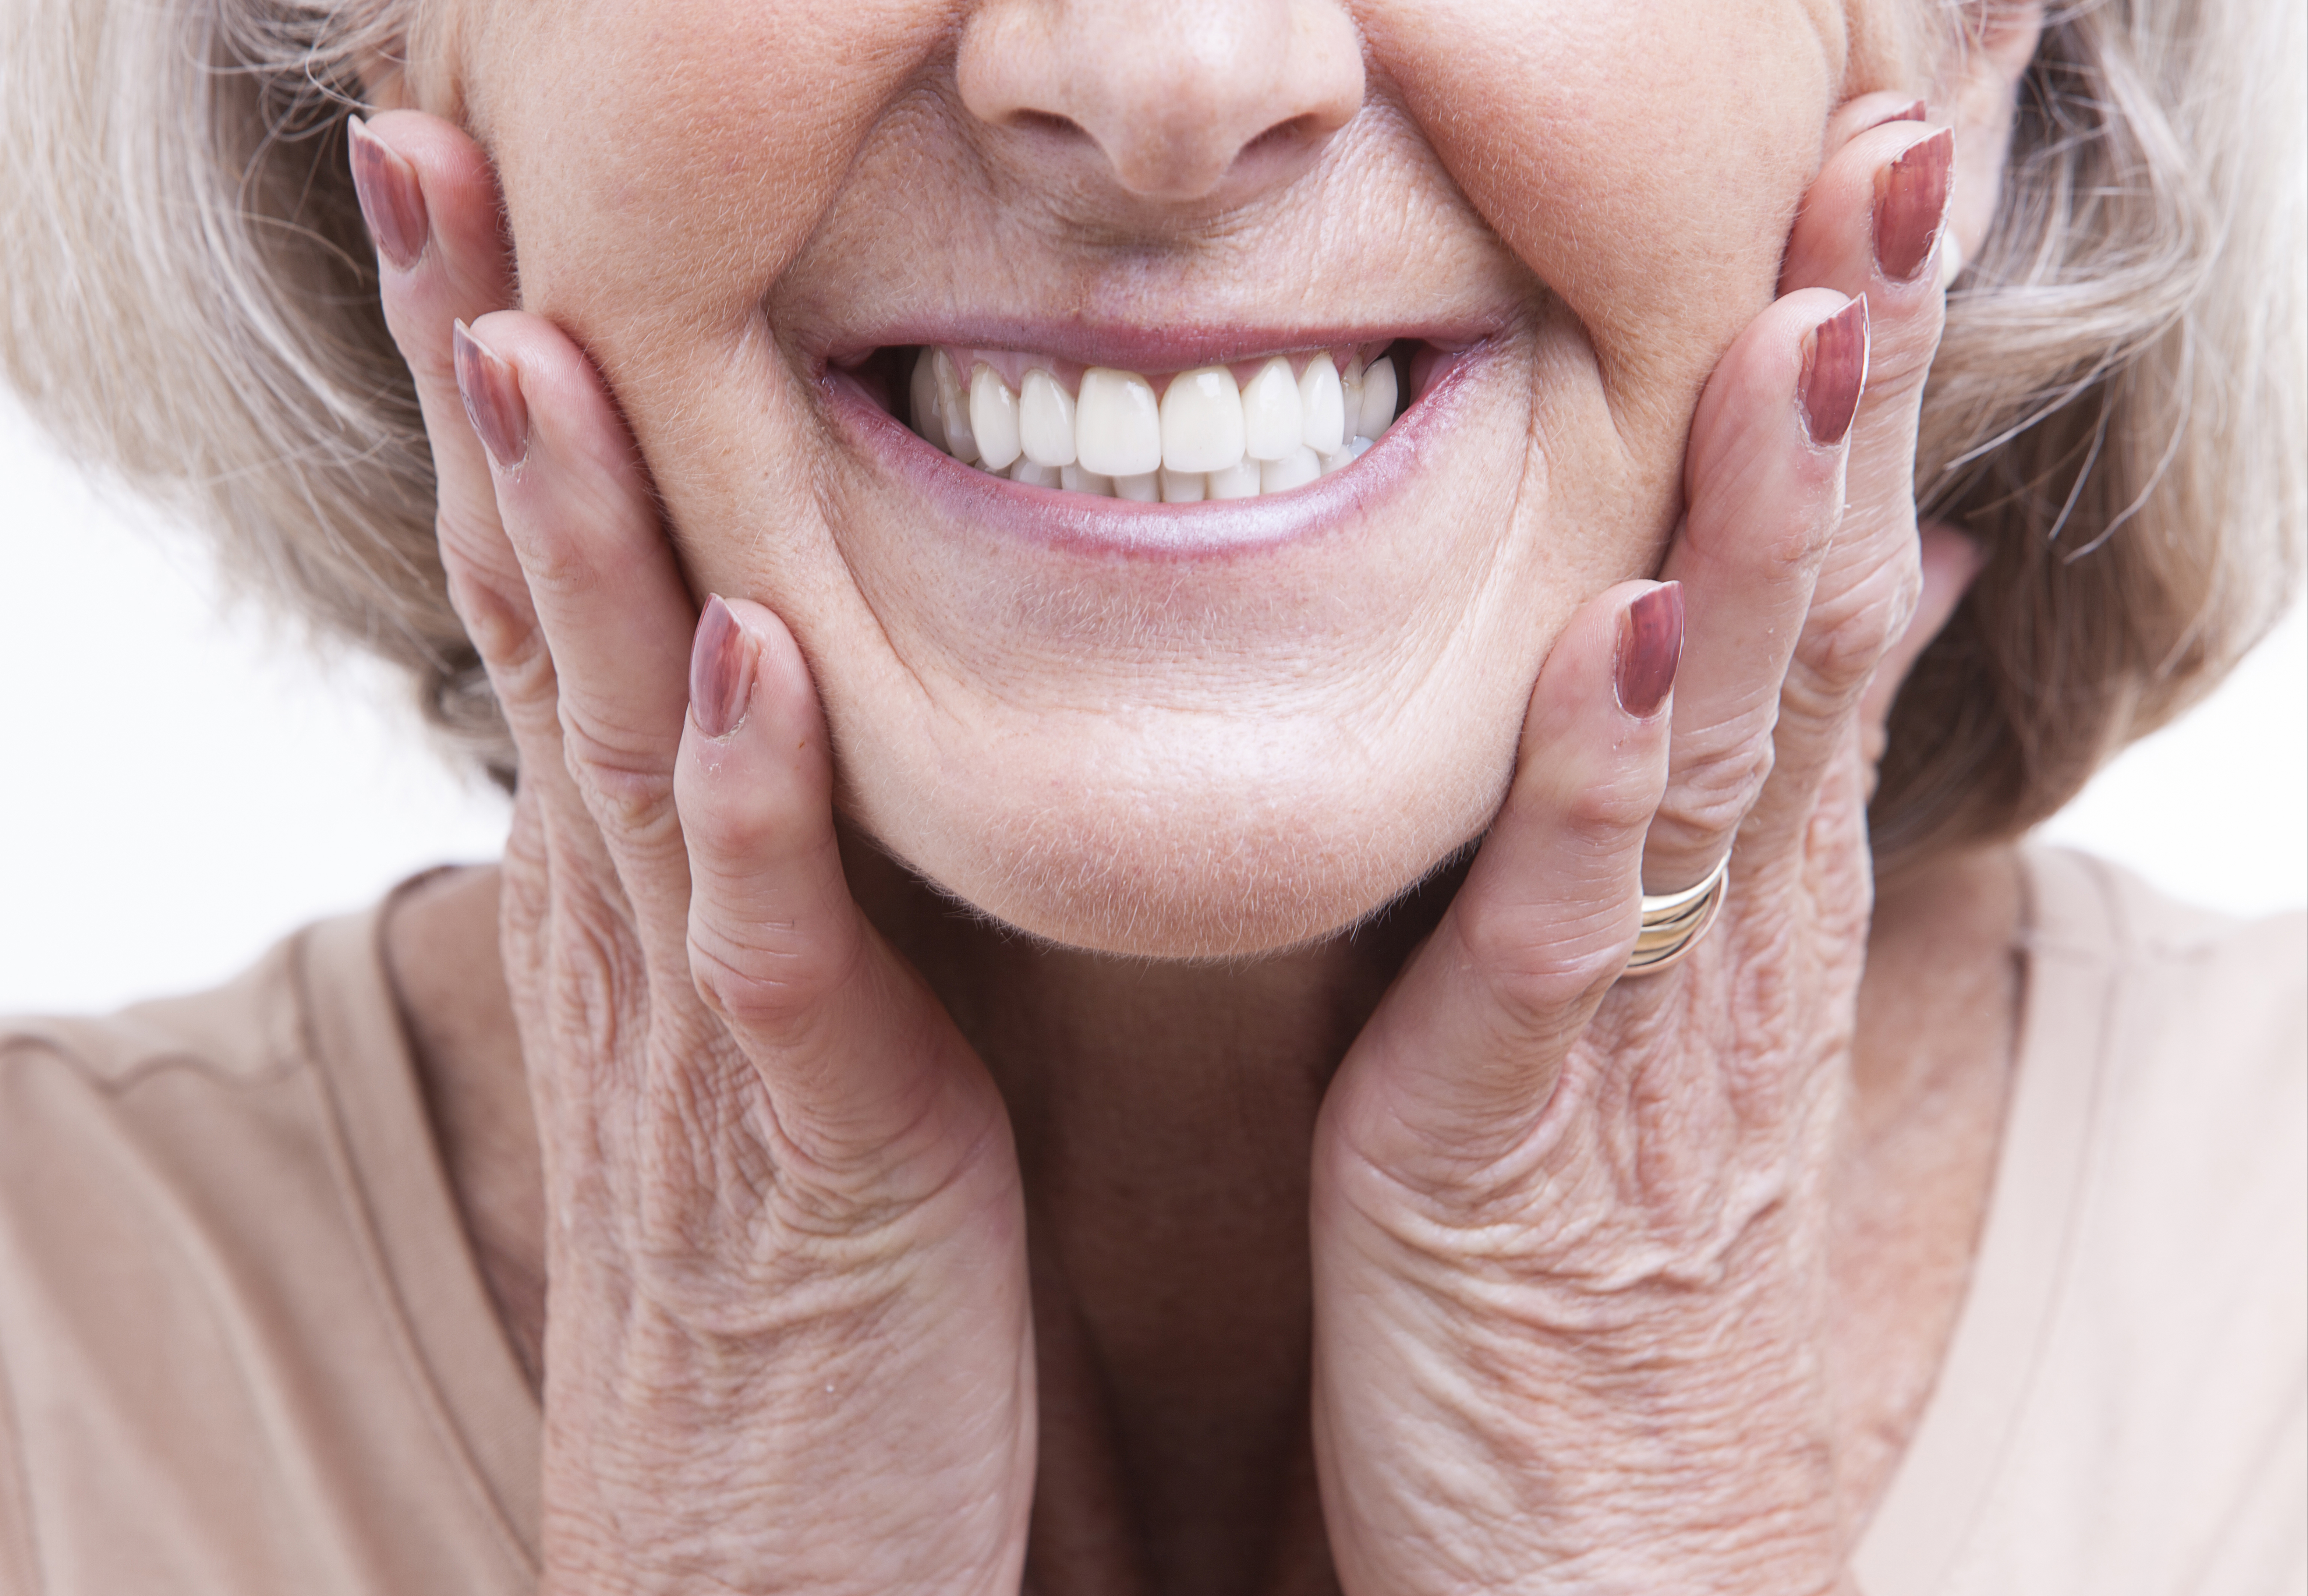 what are dental implants west palm beach?